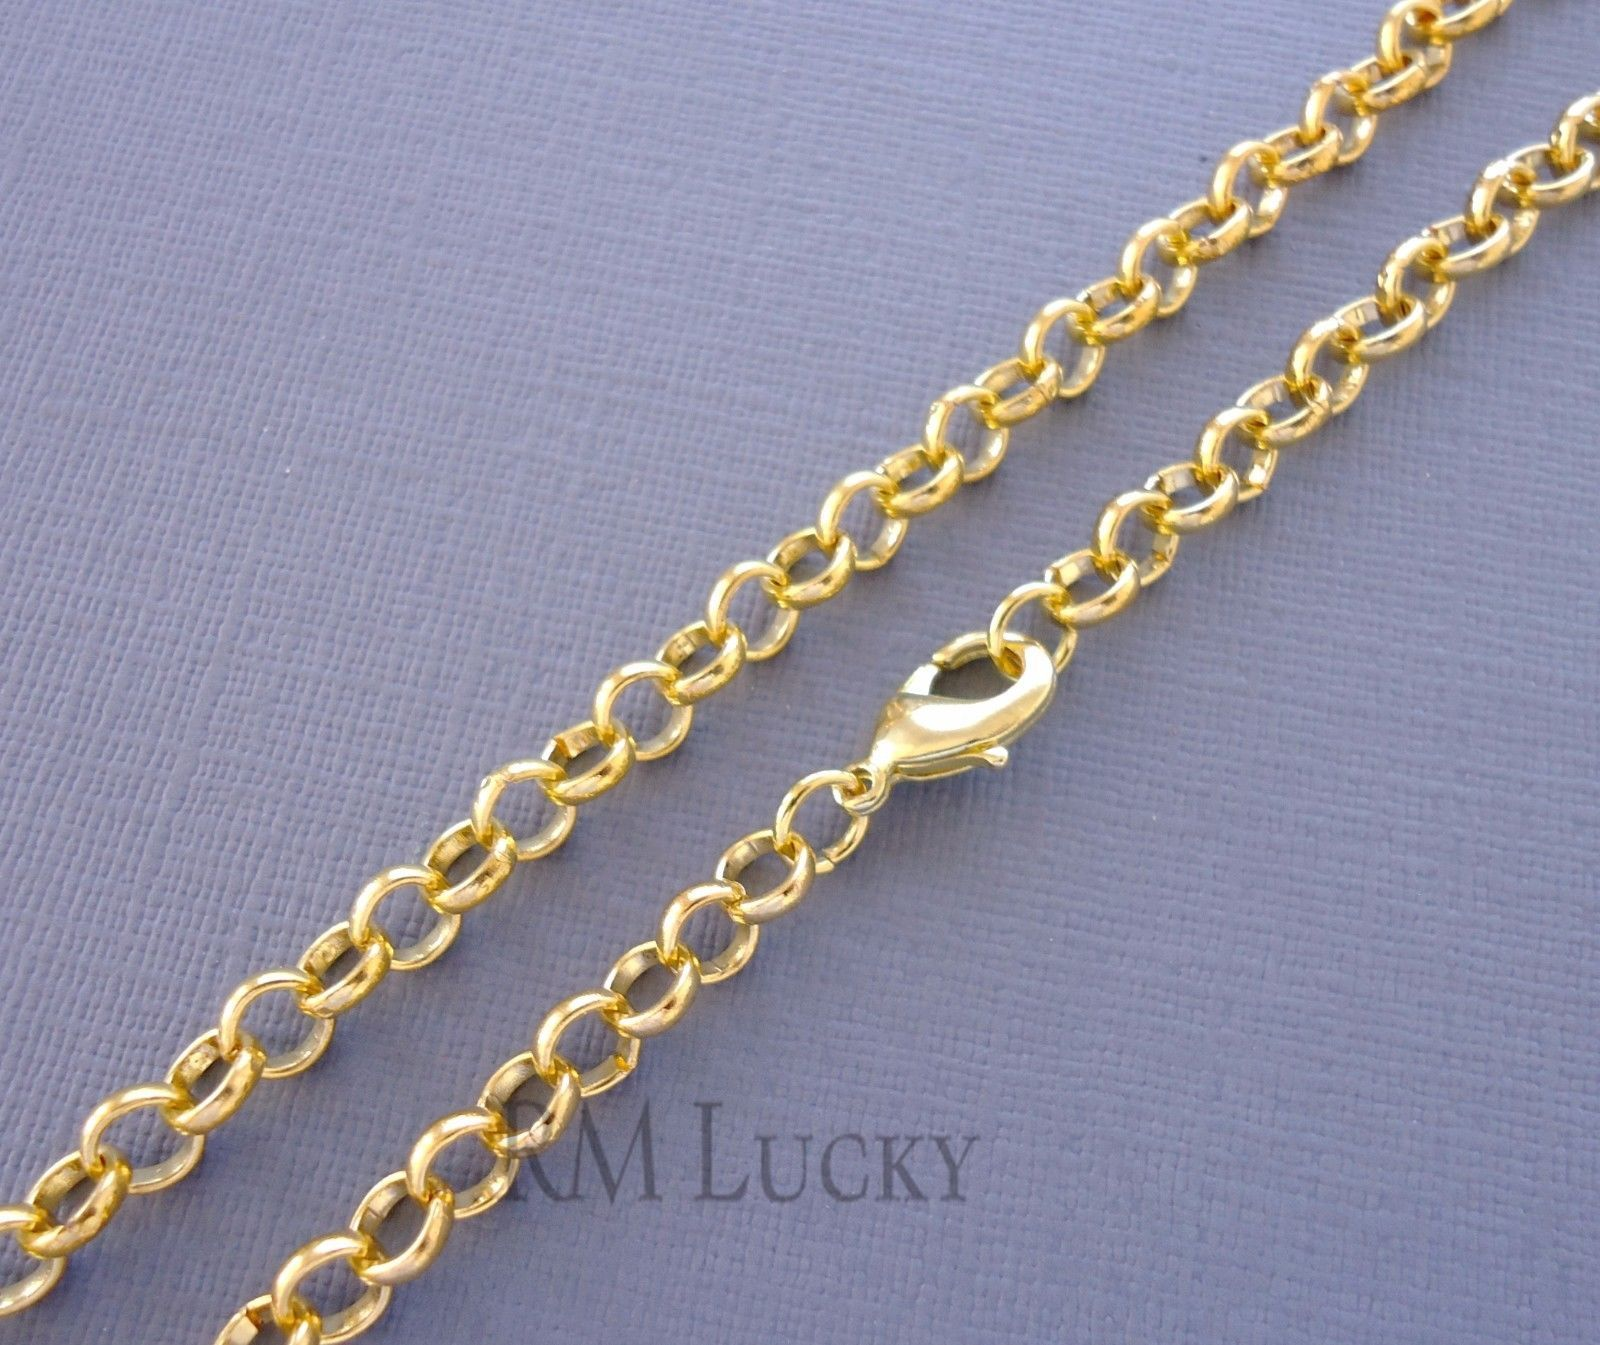 4mm 6mm Gold color Rolo Link Chain Necklace Men's Women's Kids Lobster claw